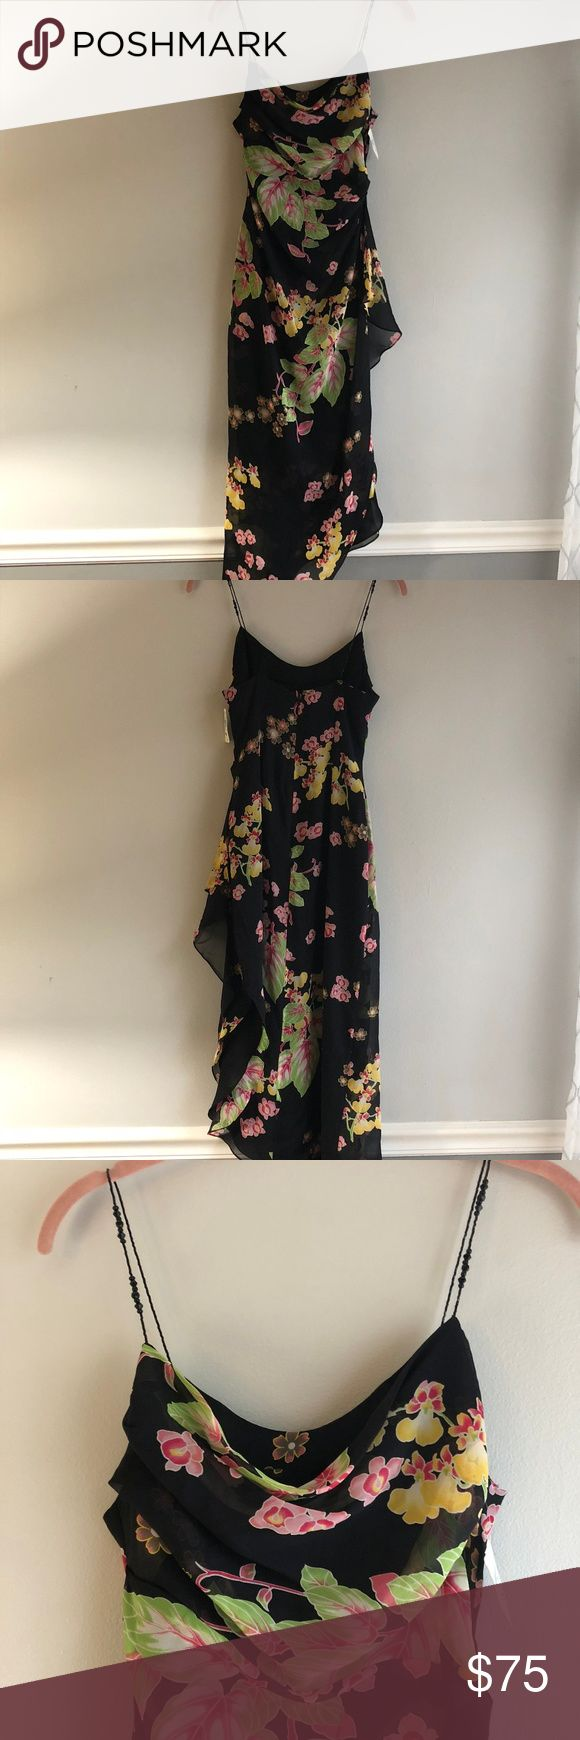 NWT Kay Unger Side Drape Tropical Cocktail Dress Beautiful Kay Unger silk chiffon side drape floral cocktail dress with asymmetrical hem.  Draped empire waist bodice with an overlay, has black beaded straps and side draped floaty silk skirt in a black print of tropical flowers and orchids, in mostly pinks, white, yellows and greens.  Center back invisible zipper. Fully lined with black crepe. Missing one ribbon hanger loop.  Neiman Marcus tag still attached. Kay Unger Dresses Asymmetrical